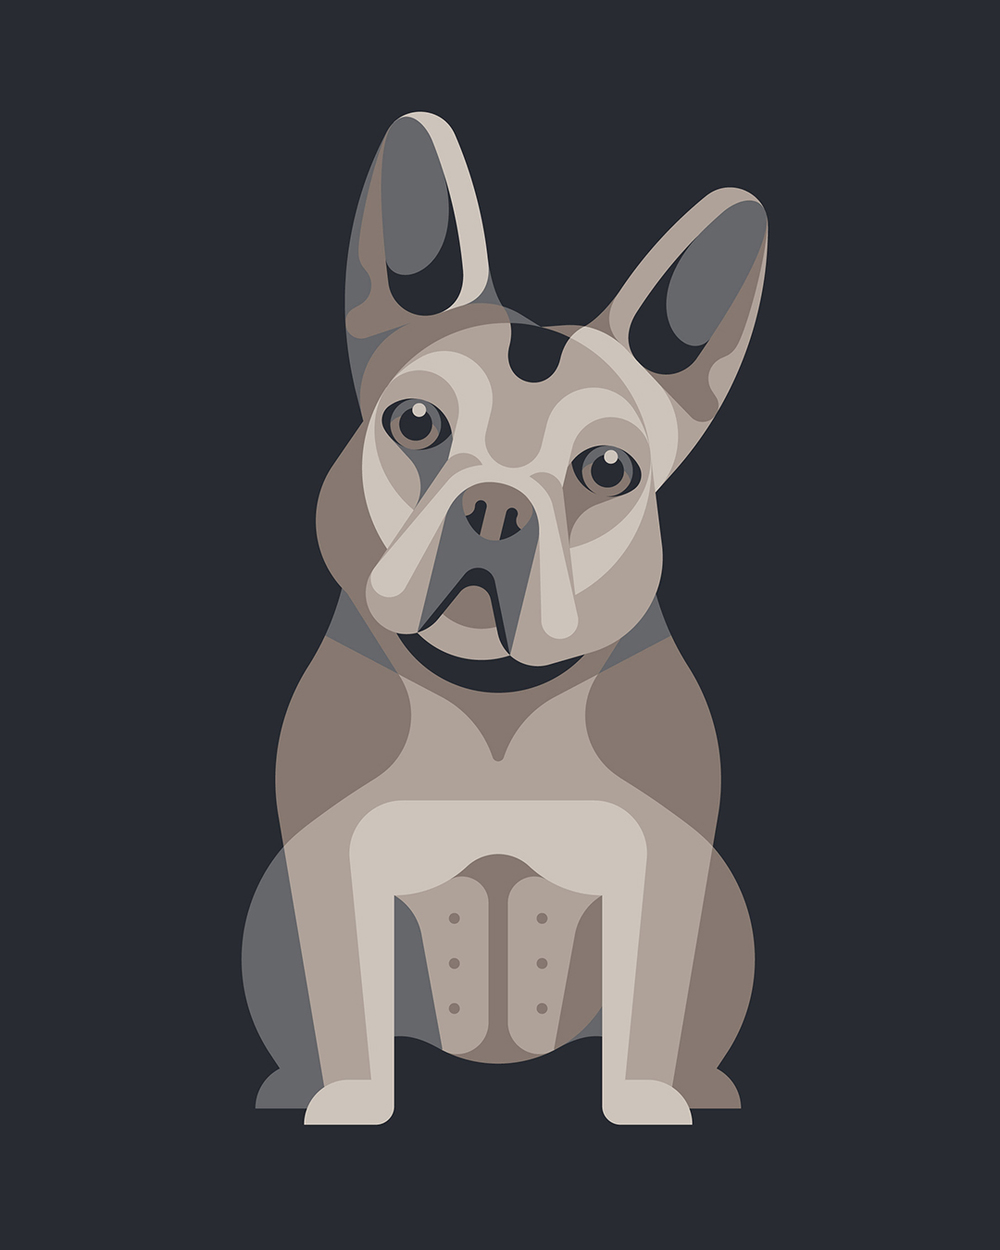 French Bulldog Illustration by DKNG